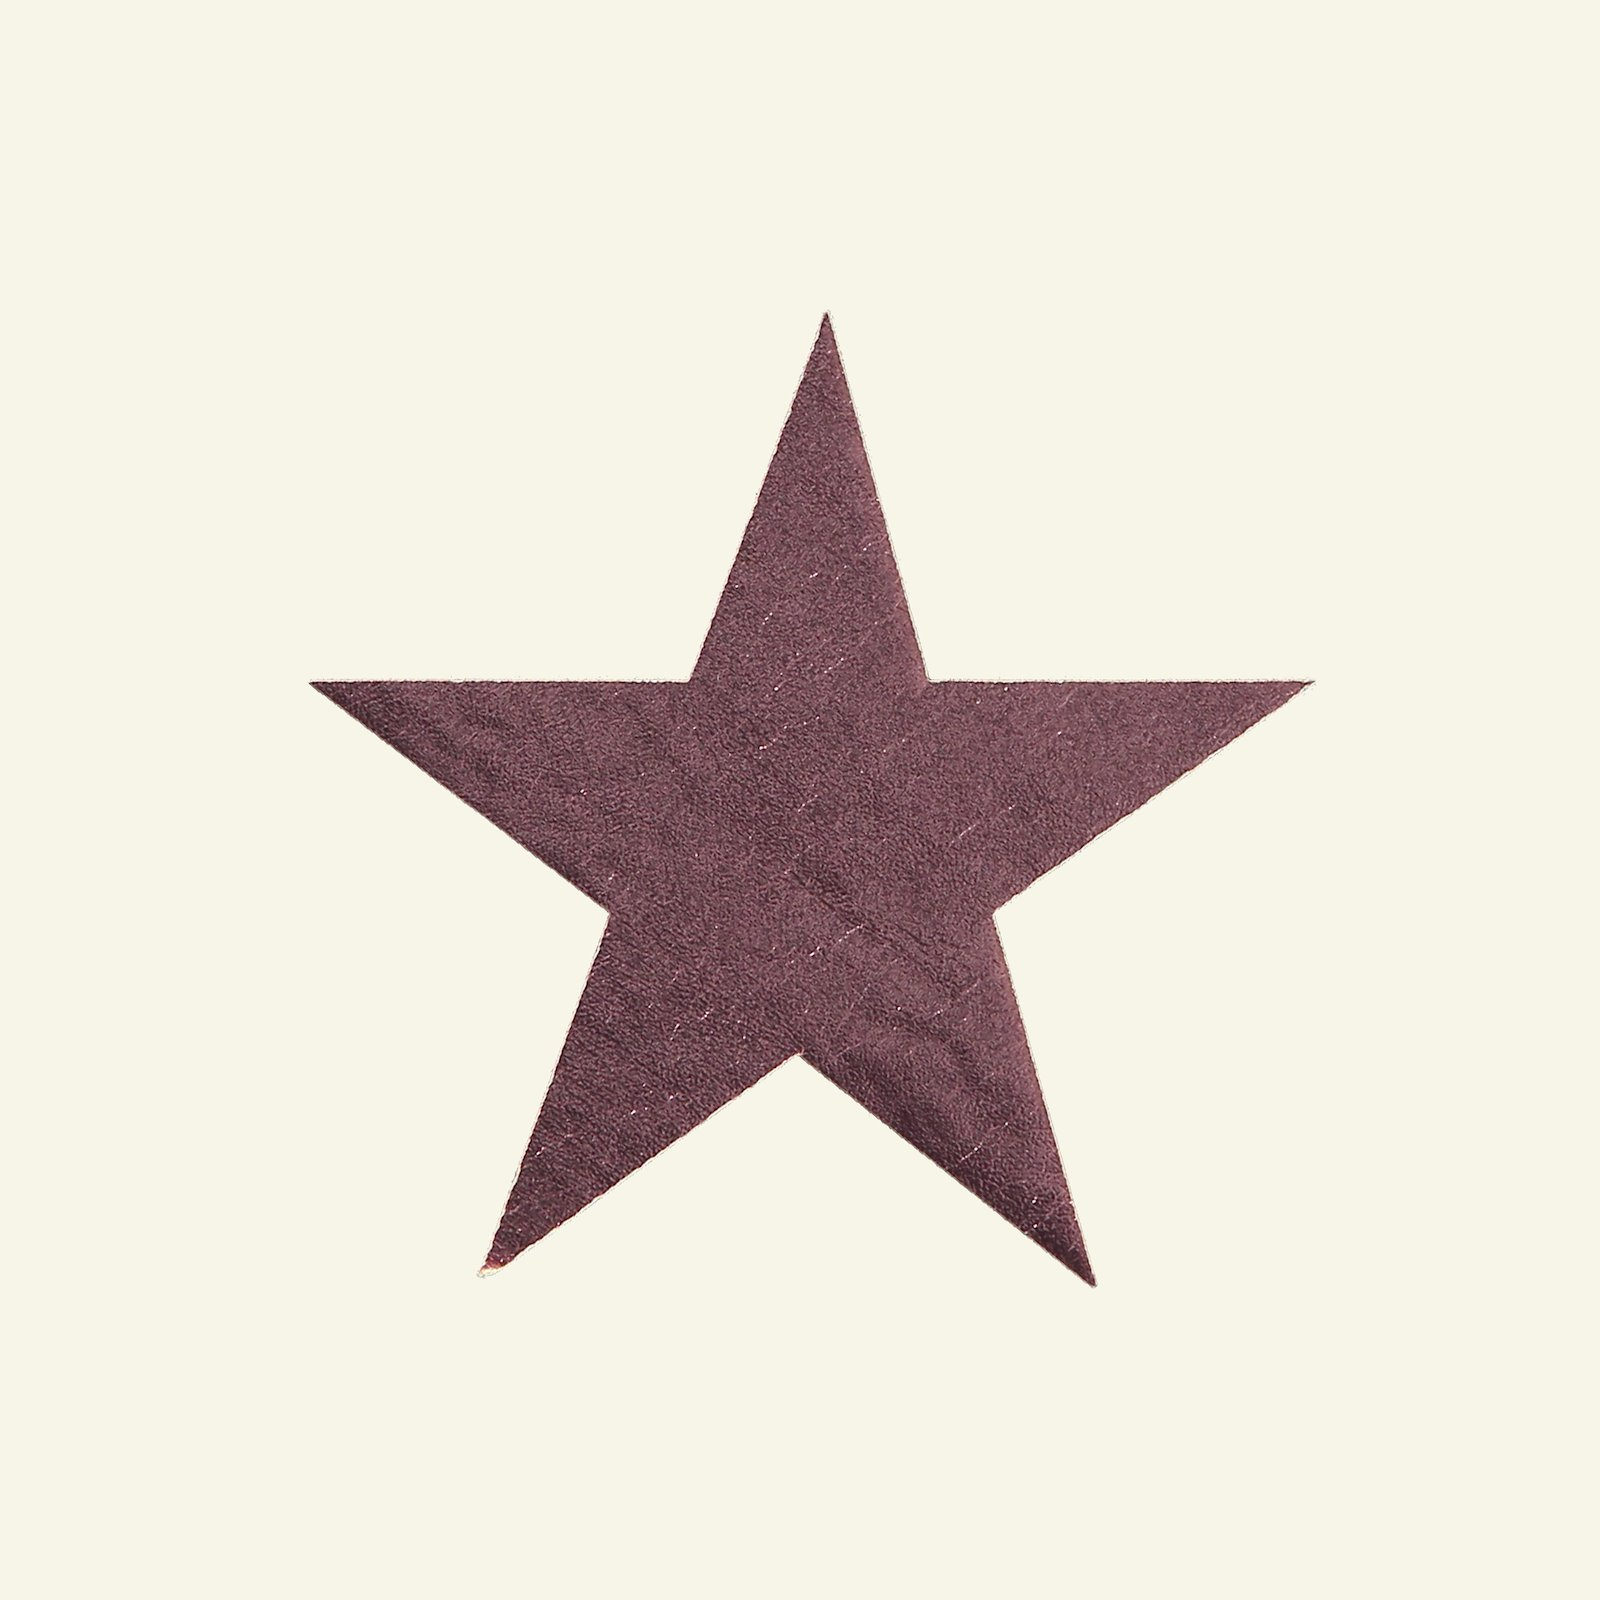 Patch star 79x72 light red 1pc 26492_pack